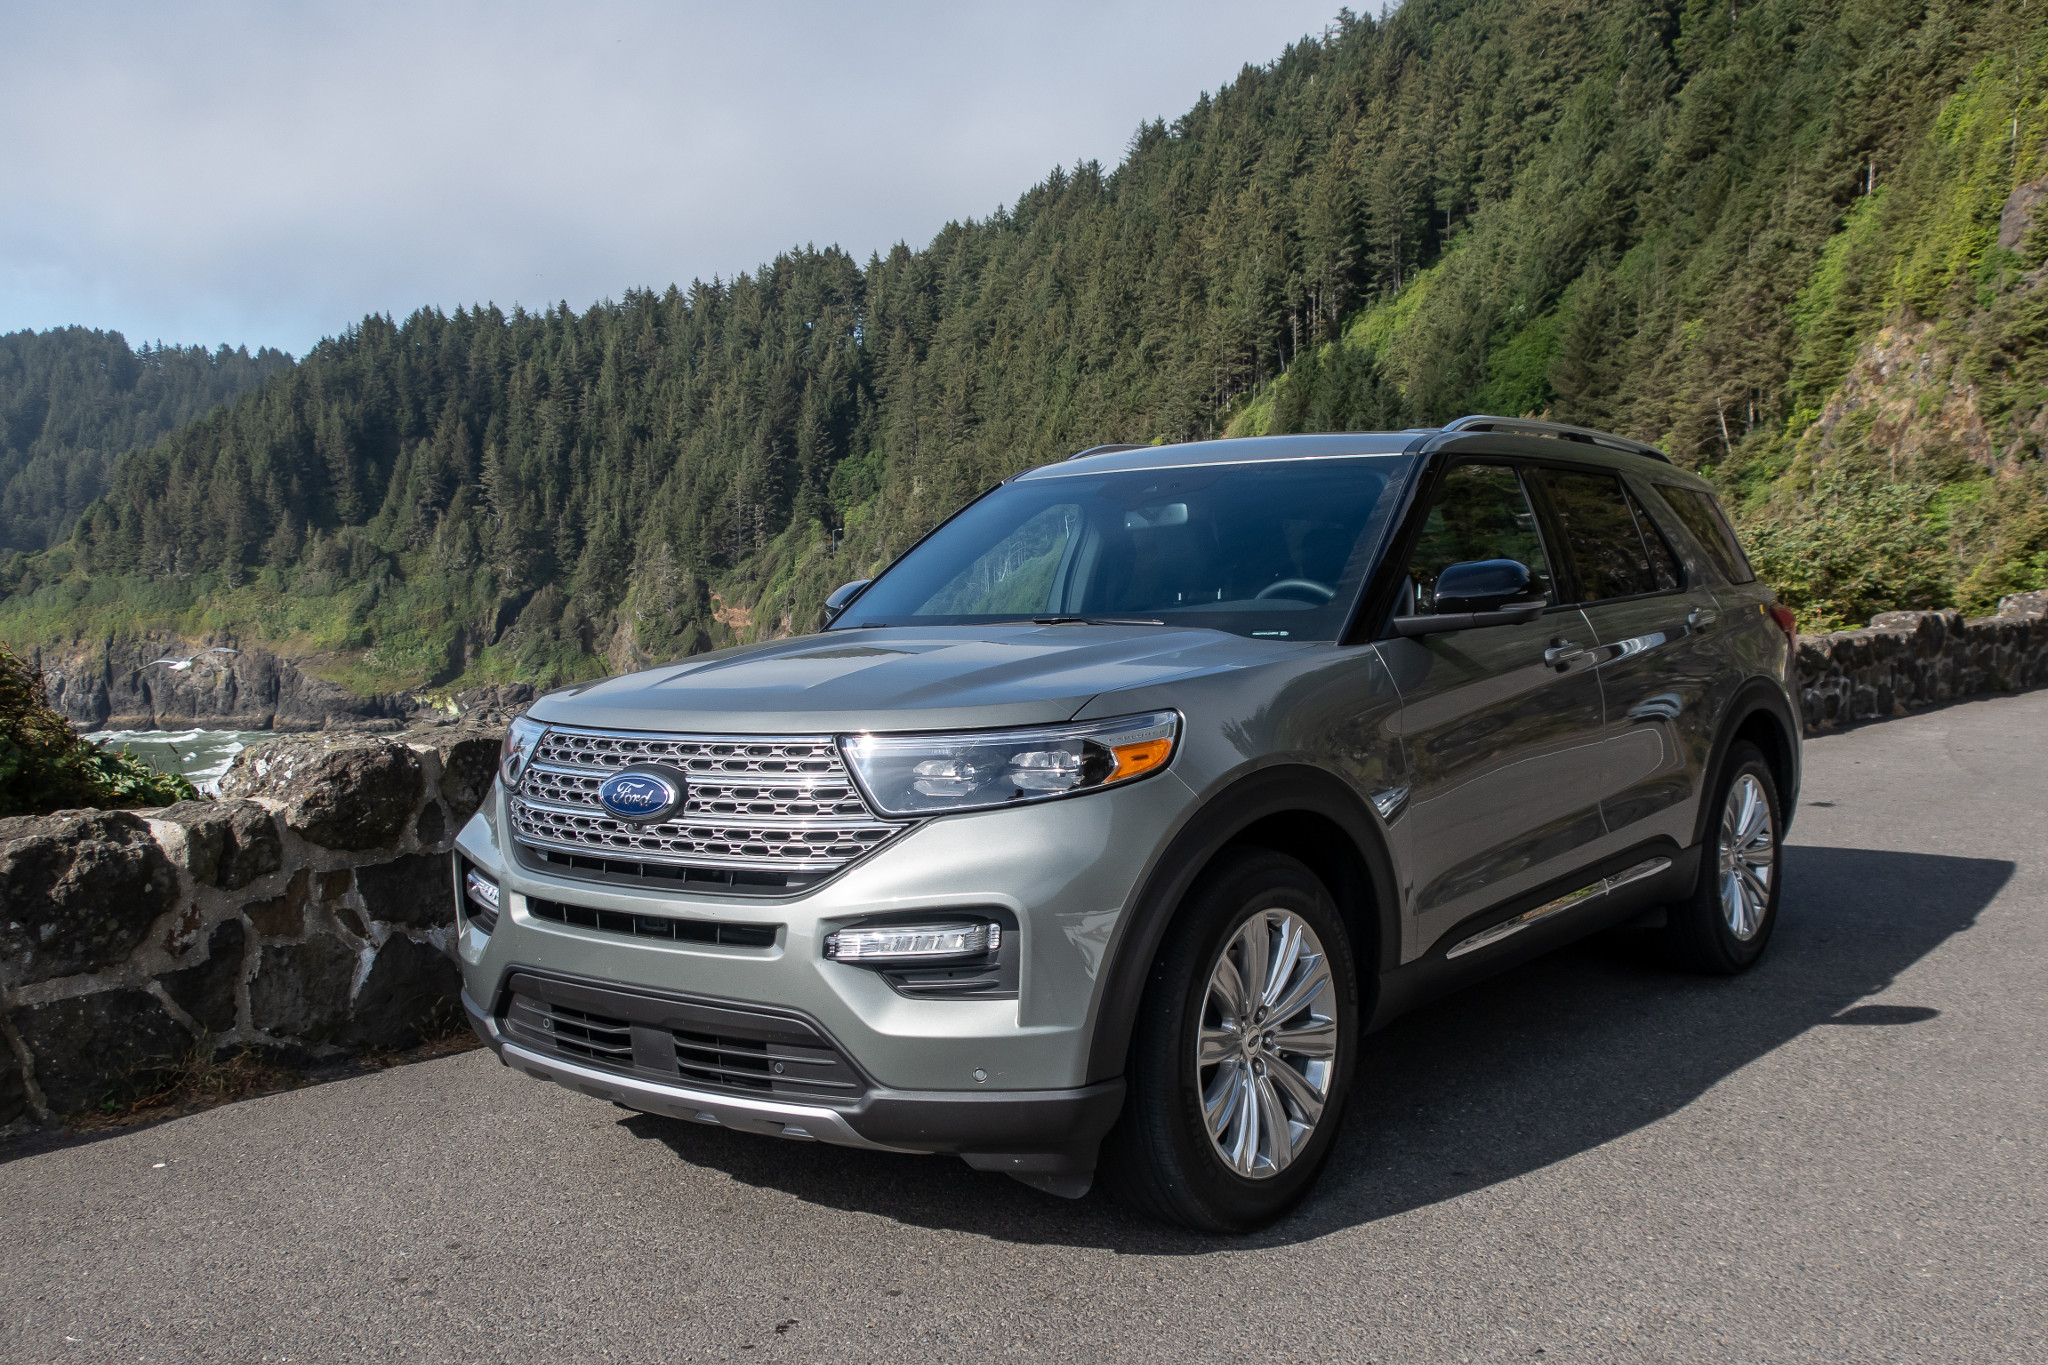 77 New Ford Hybrid Explorer 2020 Pictures with Ford Hybrid Explorer 2020